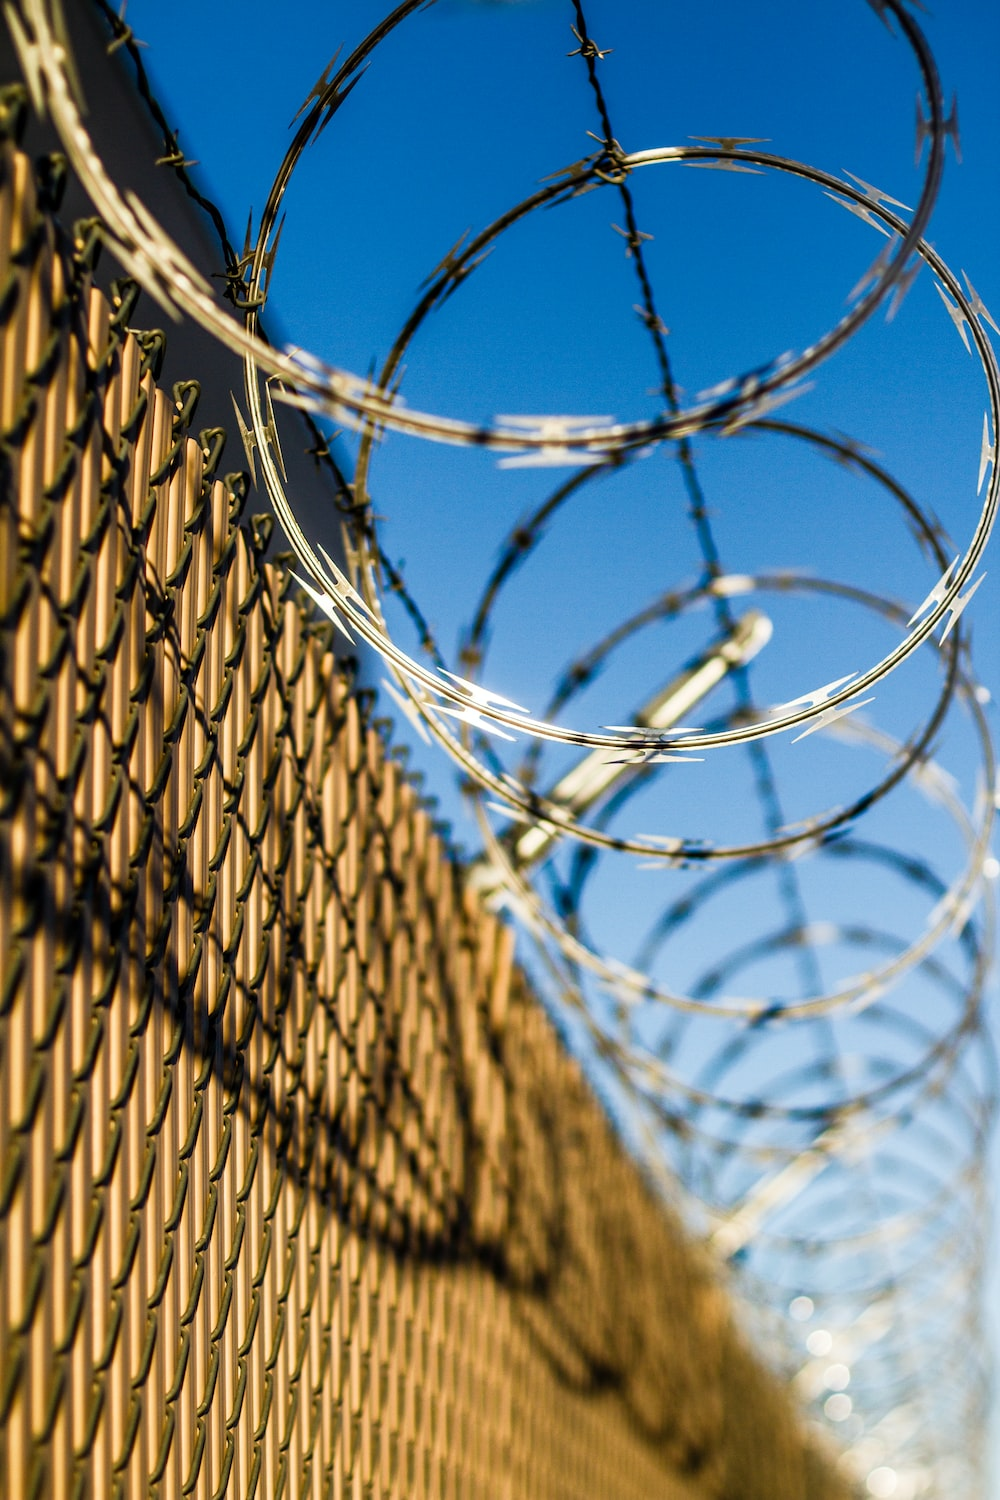 Barbwire Pictures Download Free Images On Unsplash Electric Barbed Wire Stock Photo Public Domain Stainless Steel